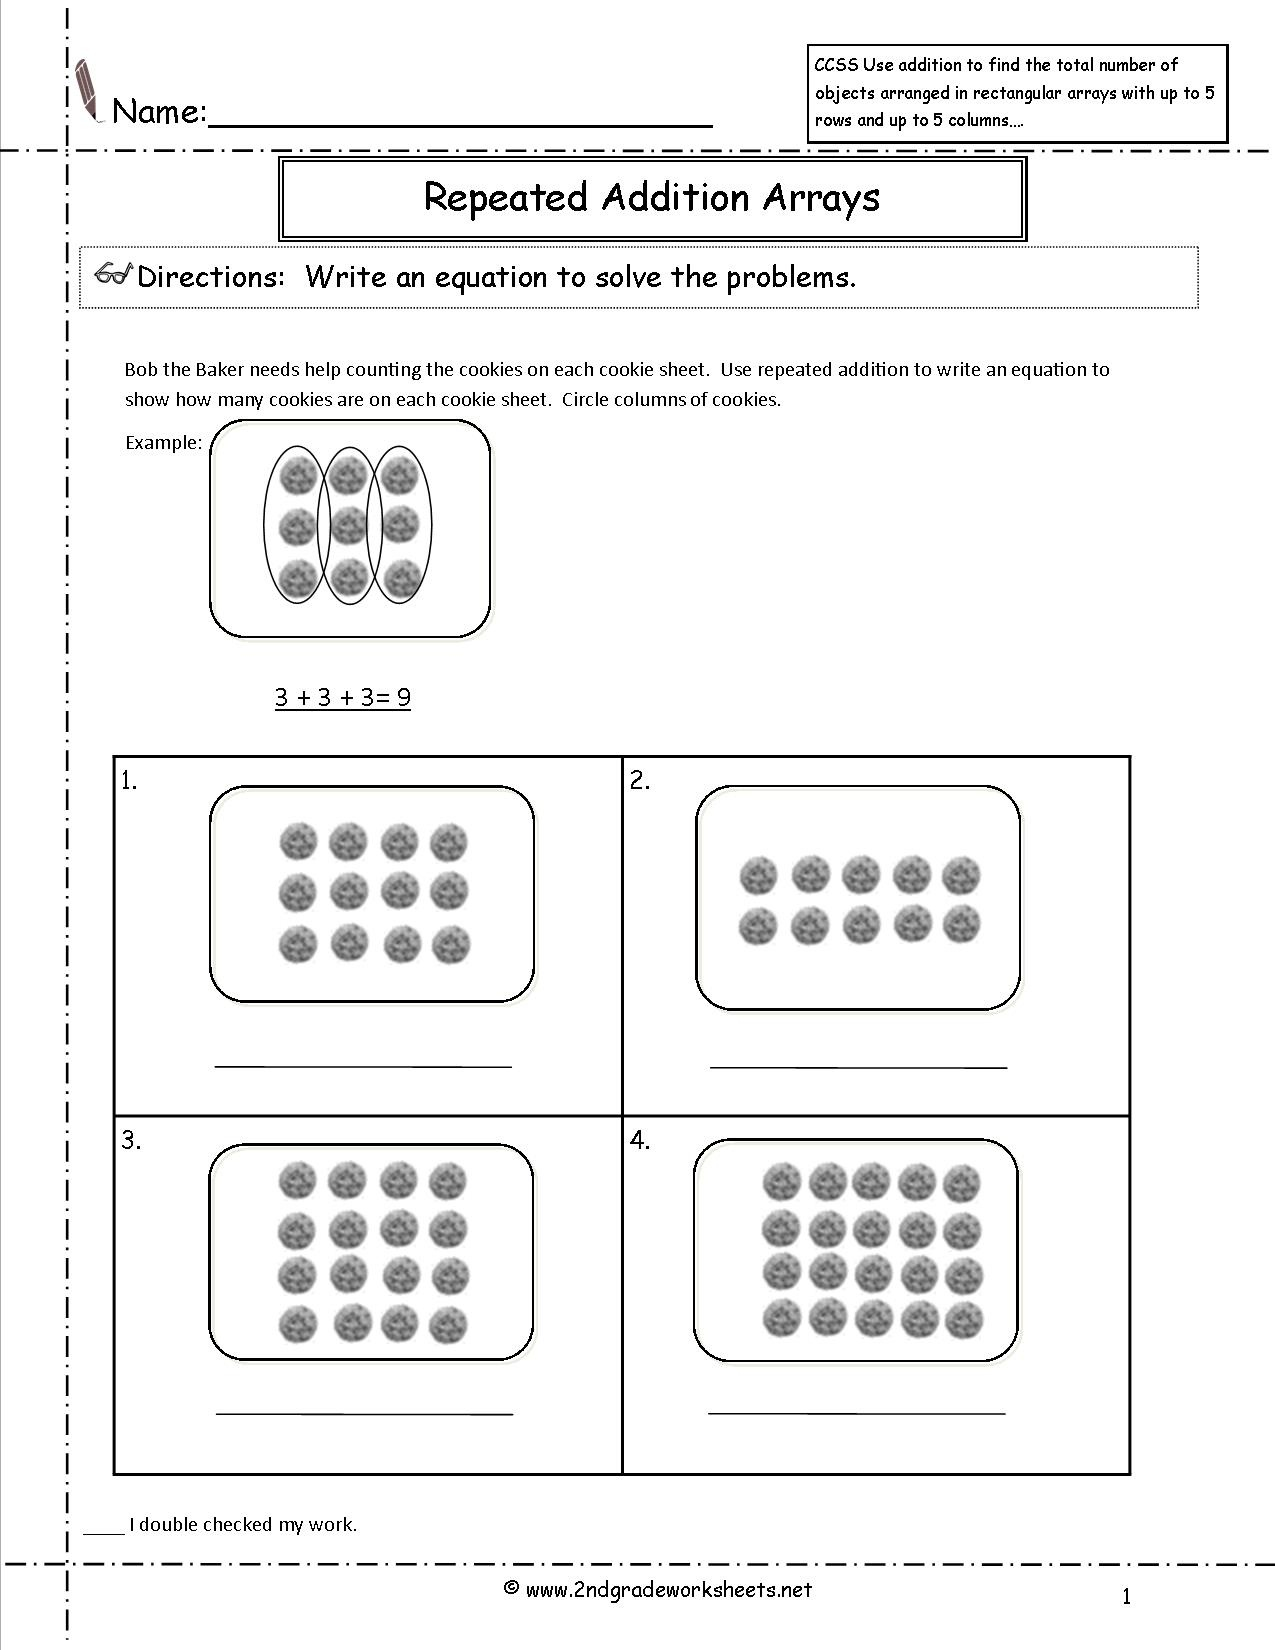 2Nd Grade Math Common Core State Standards Worksheets - Free Printable Common Core Math Worksheets For Third Grade